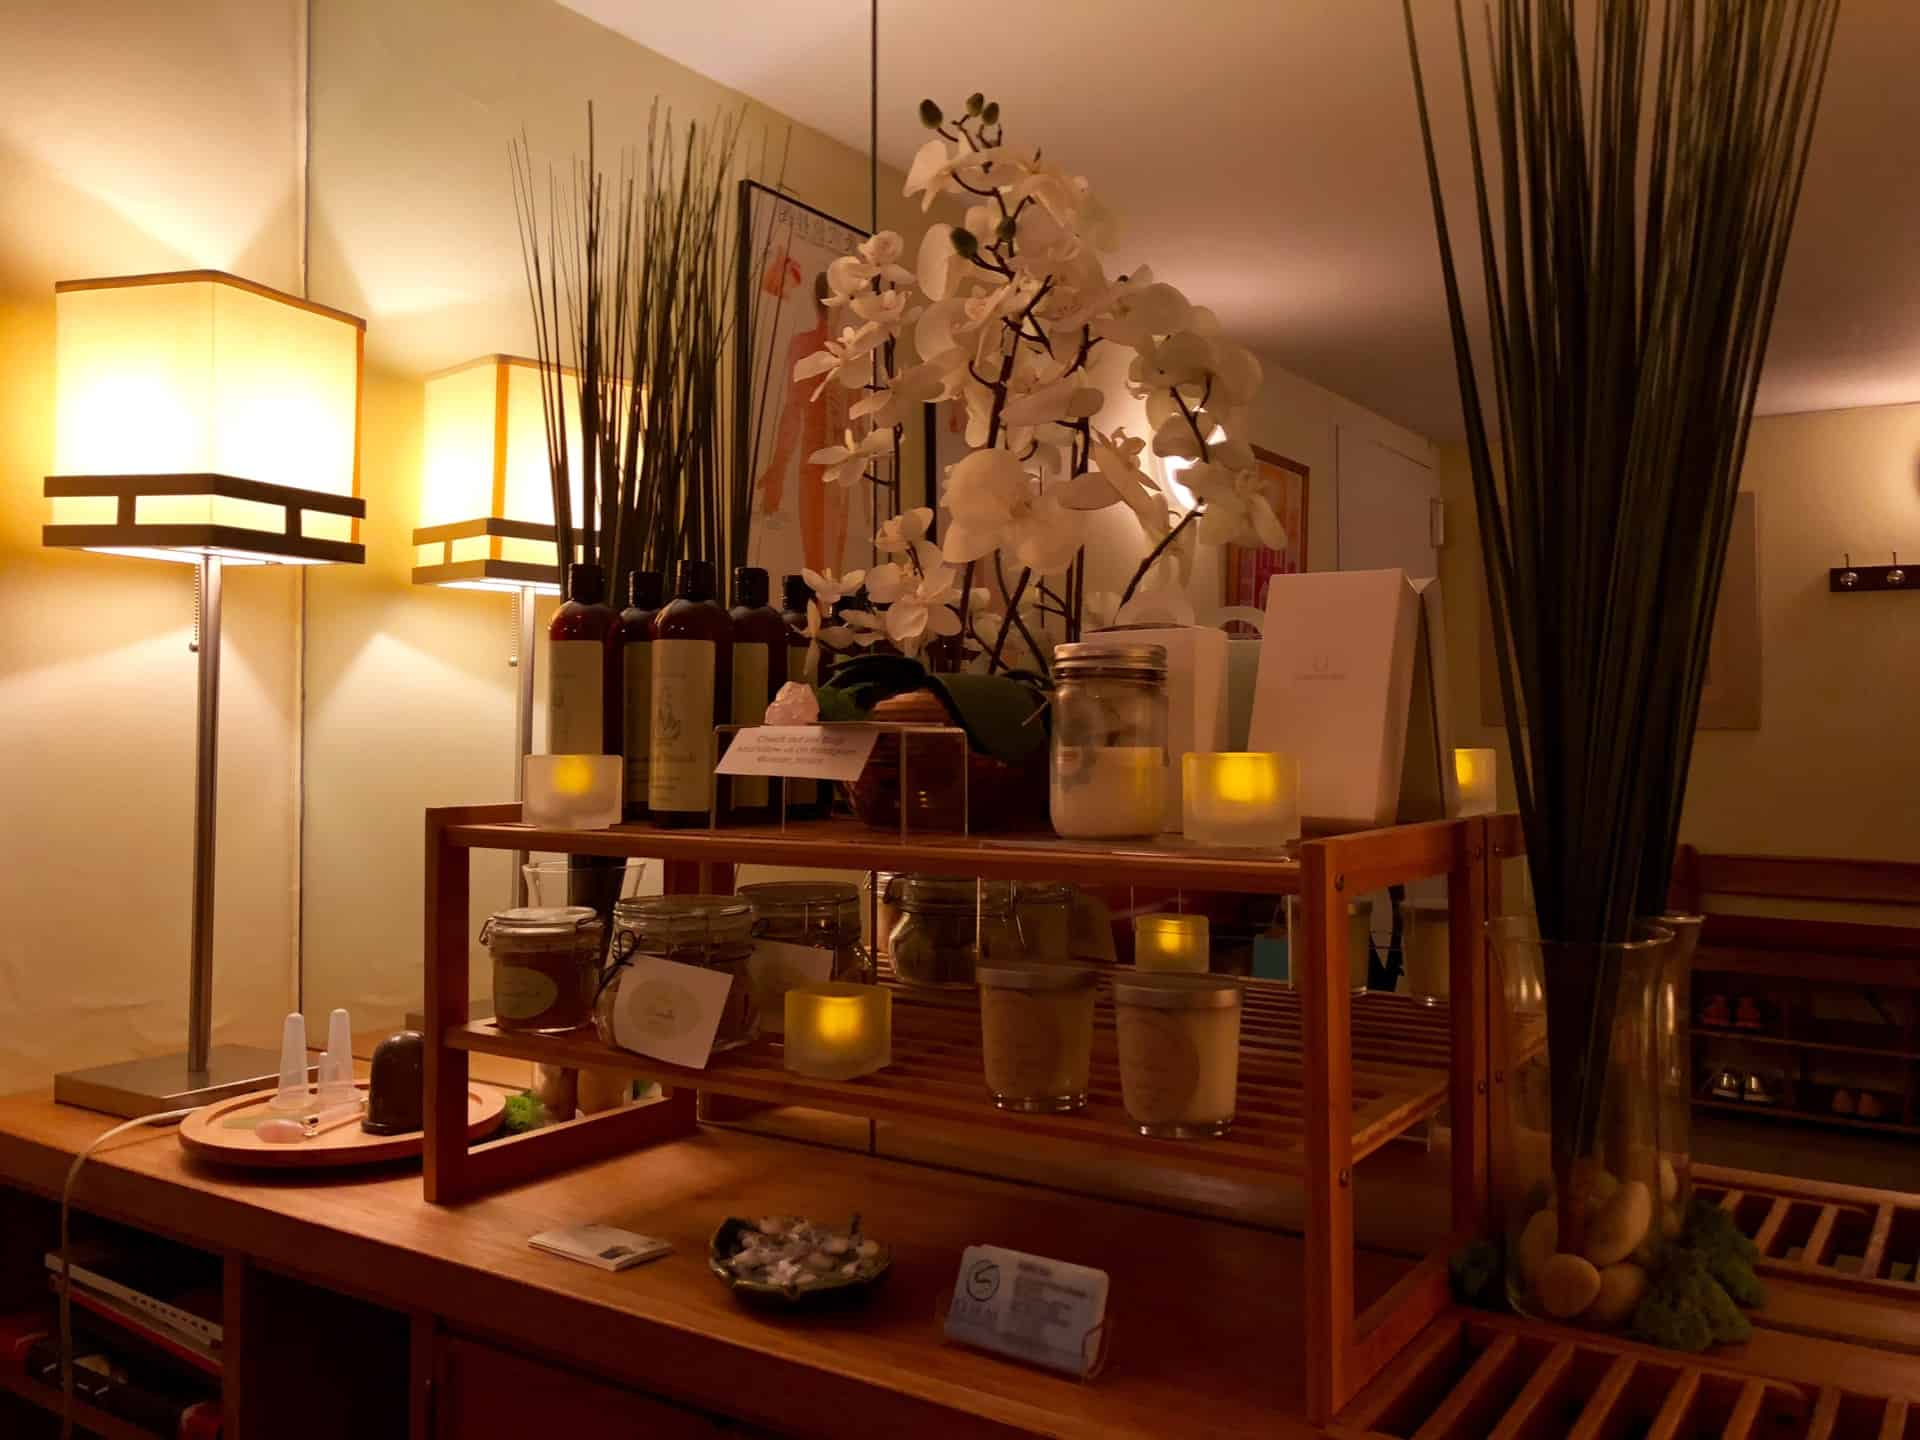 Ohm Spa - Spa Services & Packages - Massage & Facial Treatments